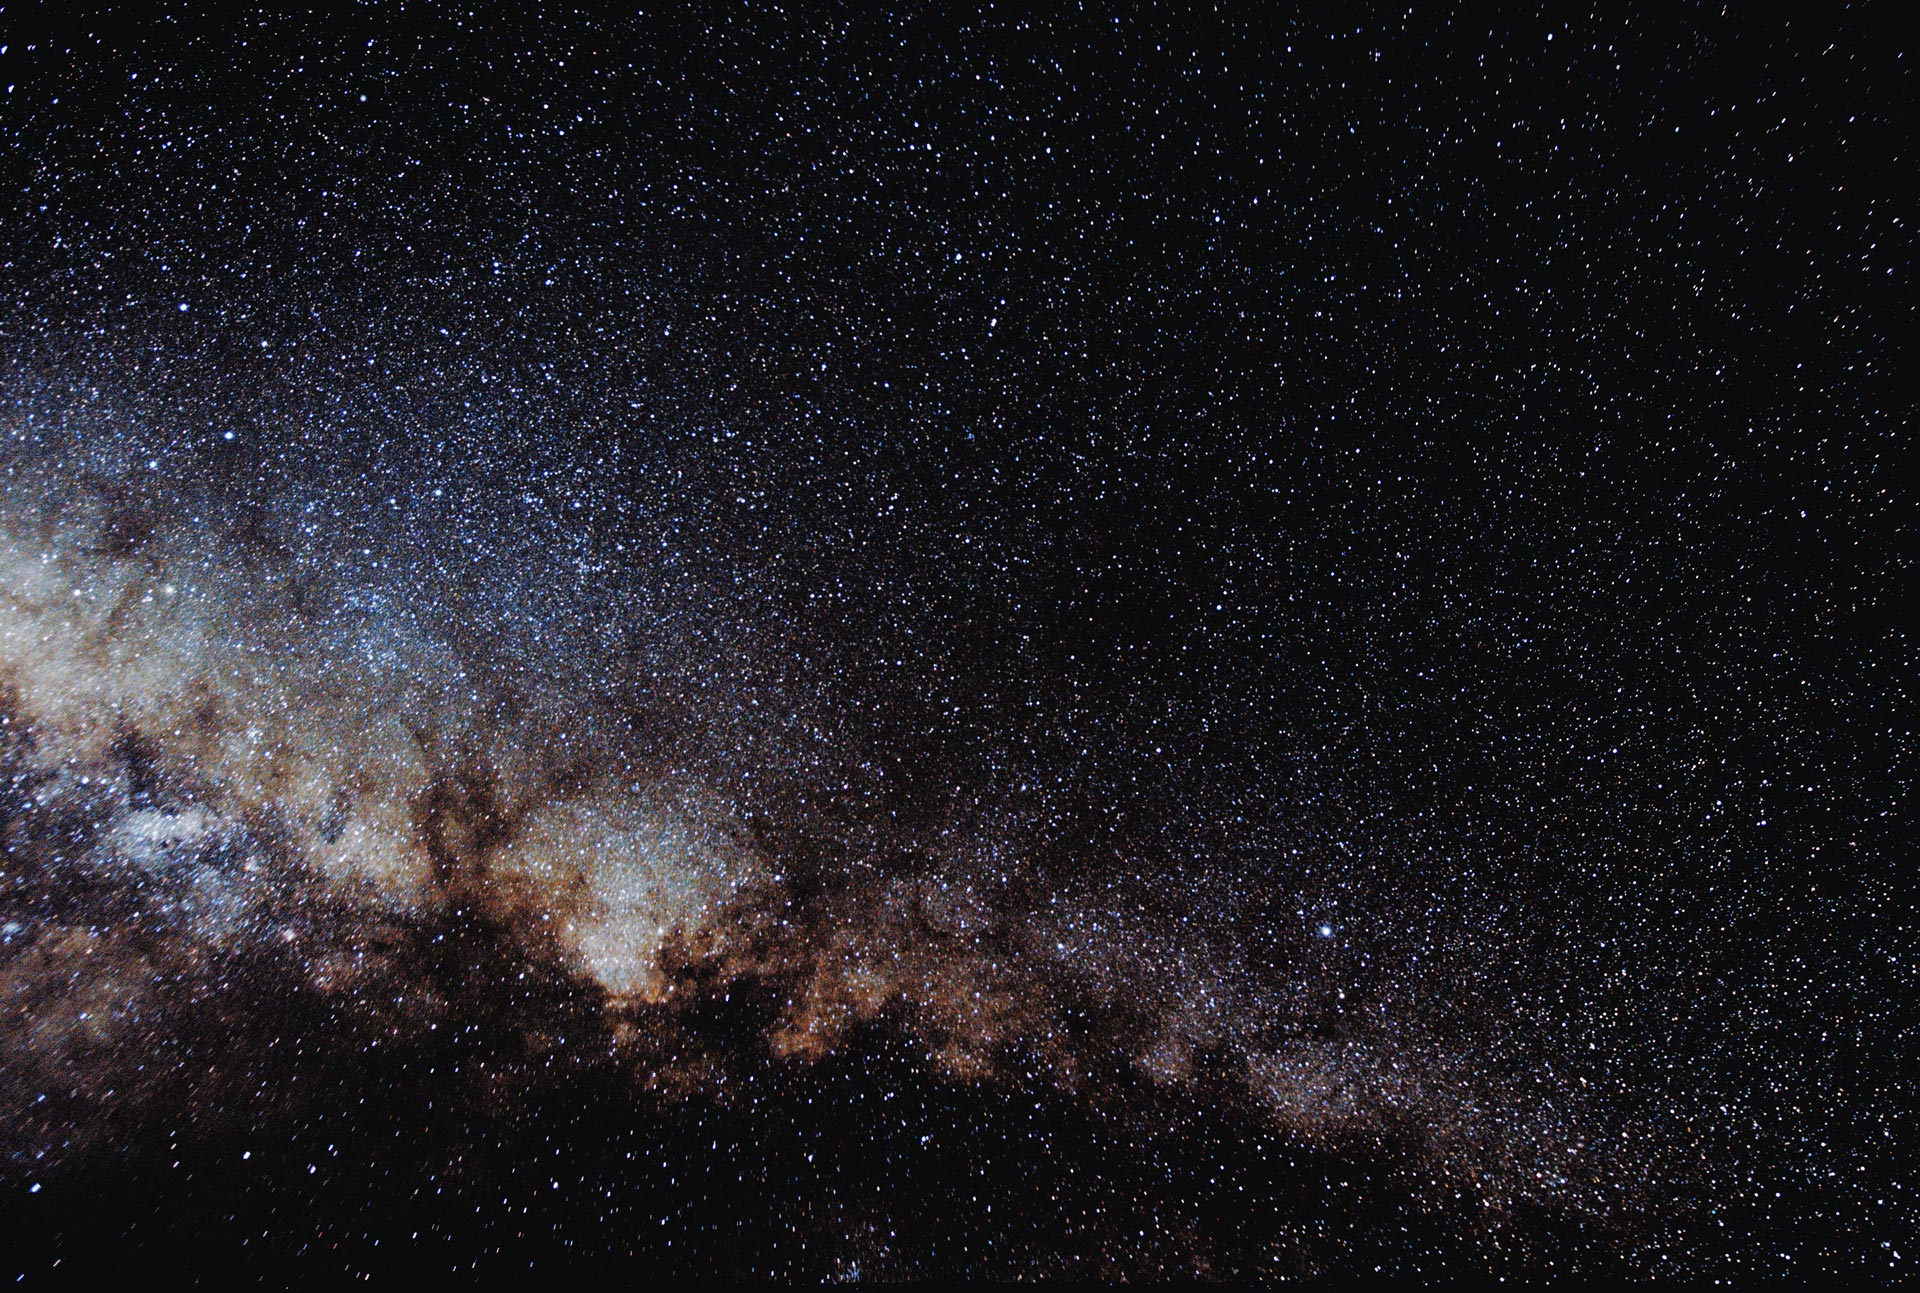 Canon 760D on tripod. 20mm lens F2.8. Processed in Nebulosity and Photoshop. Deon Krige